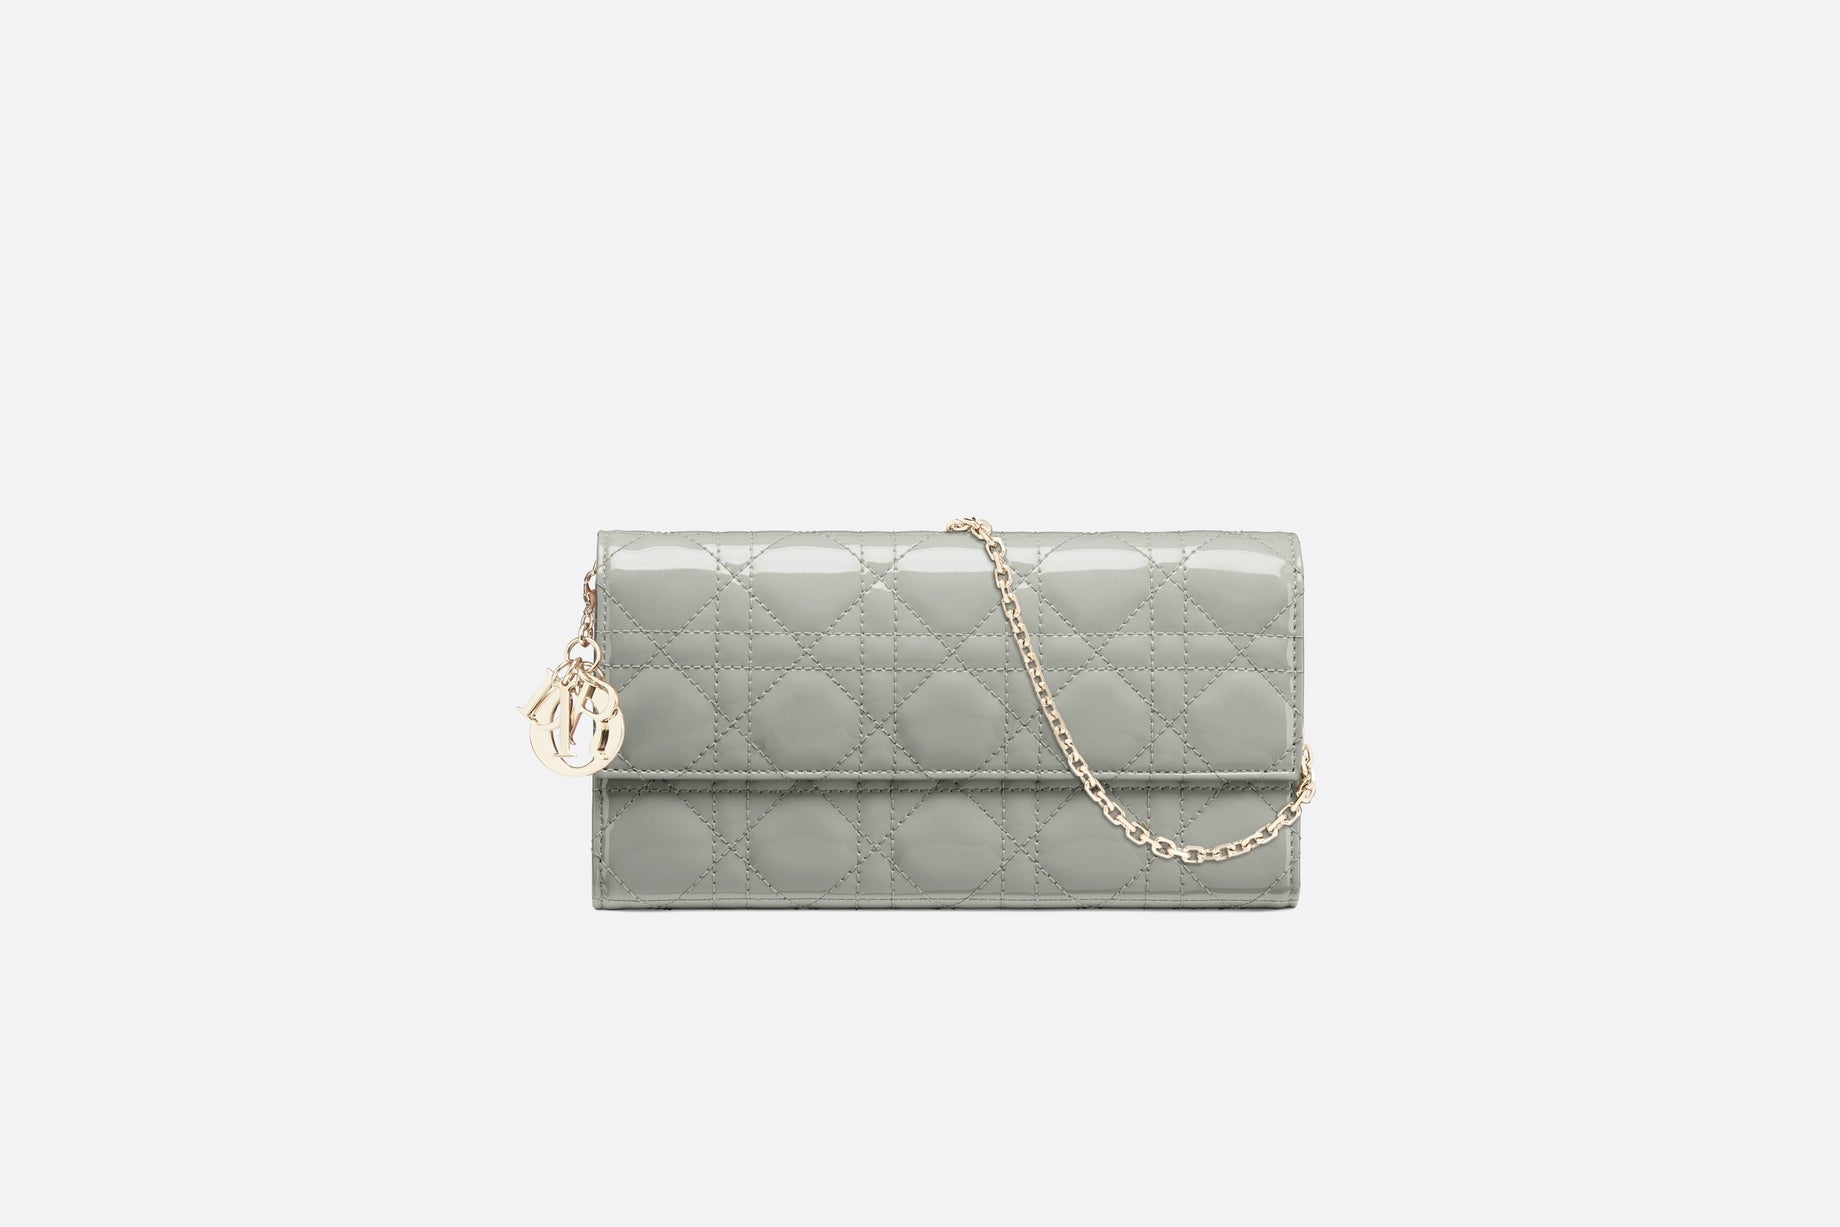 Lady Dior Long Wallet • Gray Stone Patent Cannage Calfskin